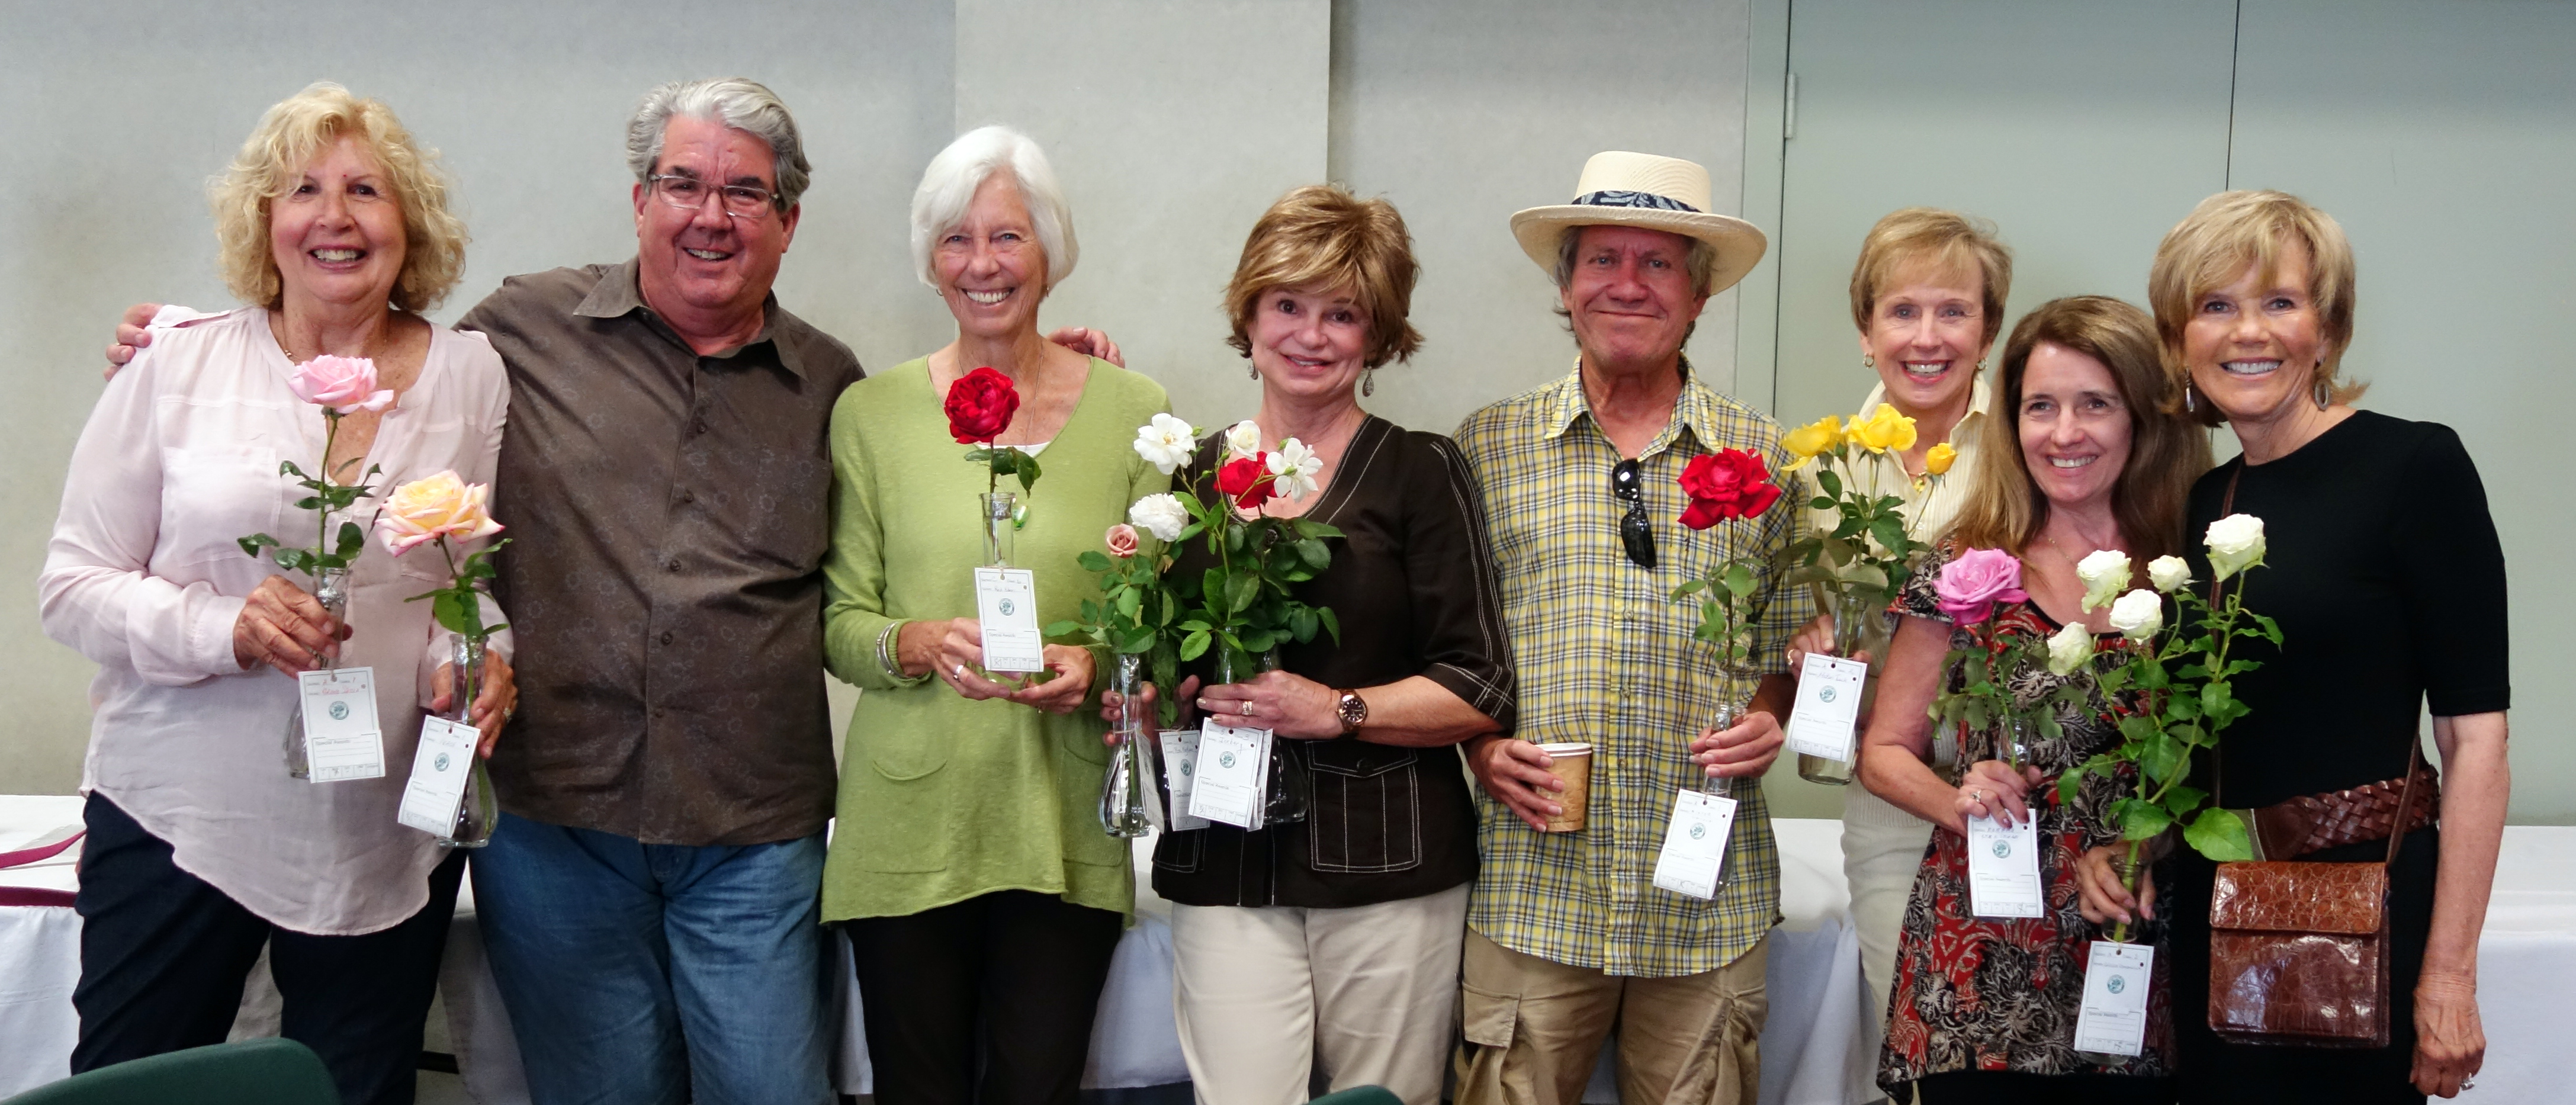 Tom Carruth, second from left, judged the show.